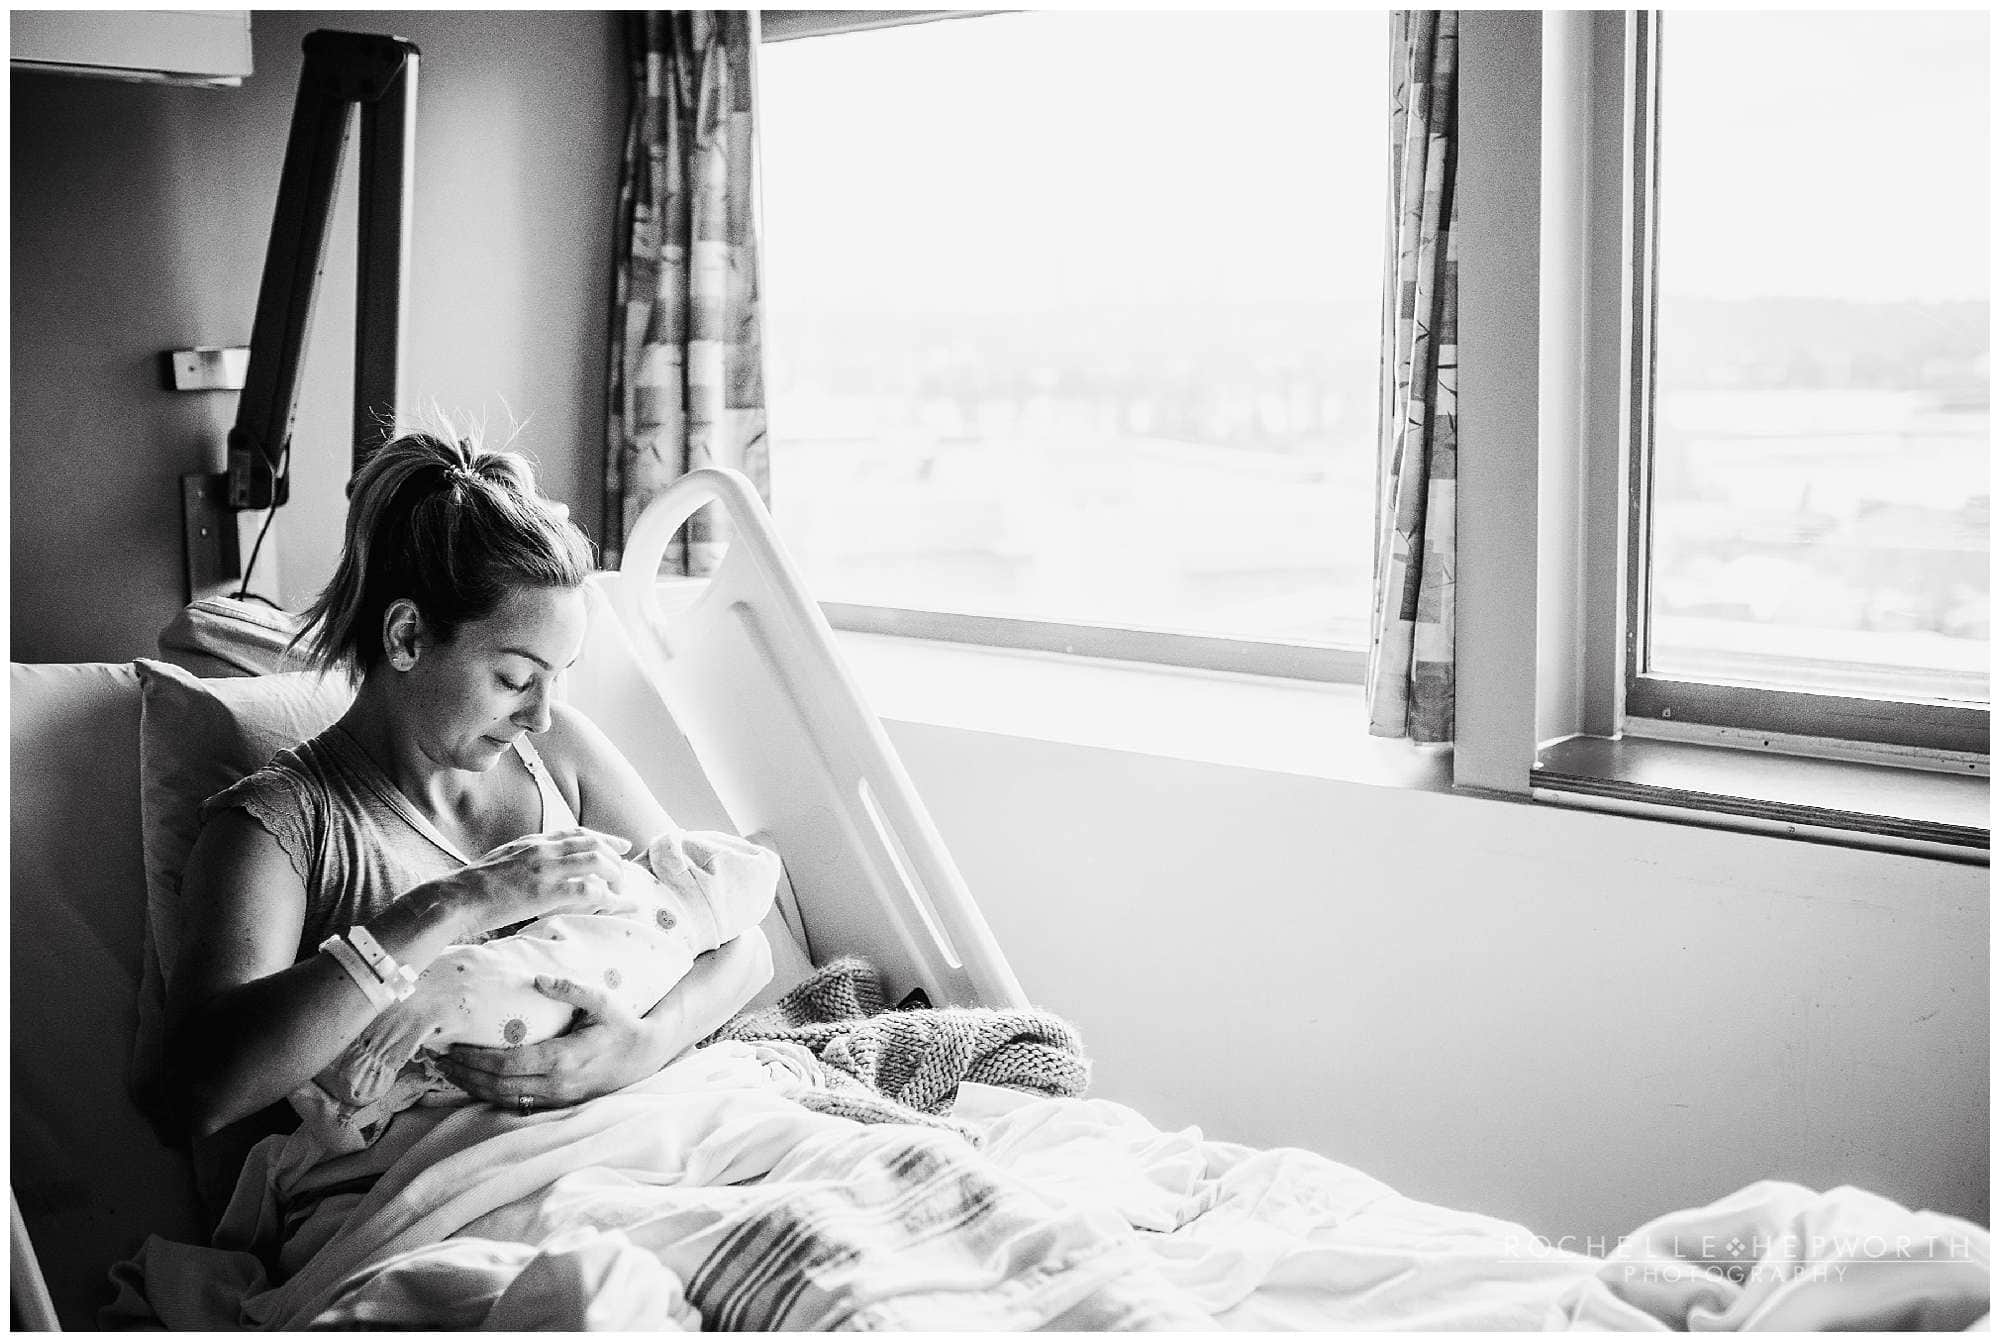 Black and white photo of mom breastfeeding baby in hospital bed